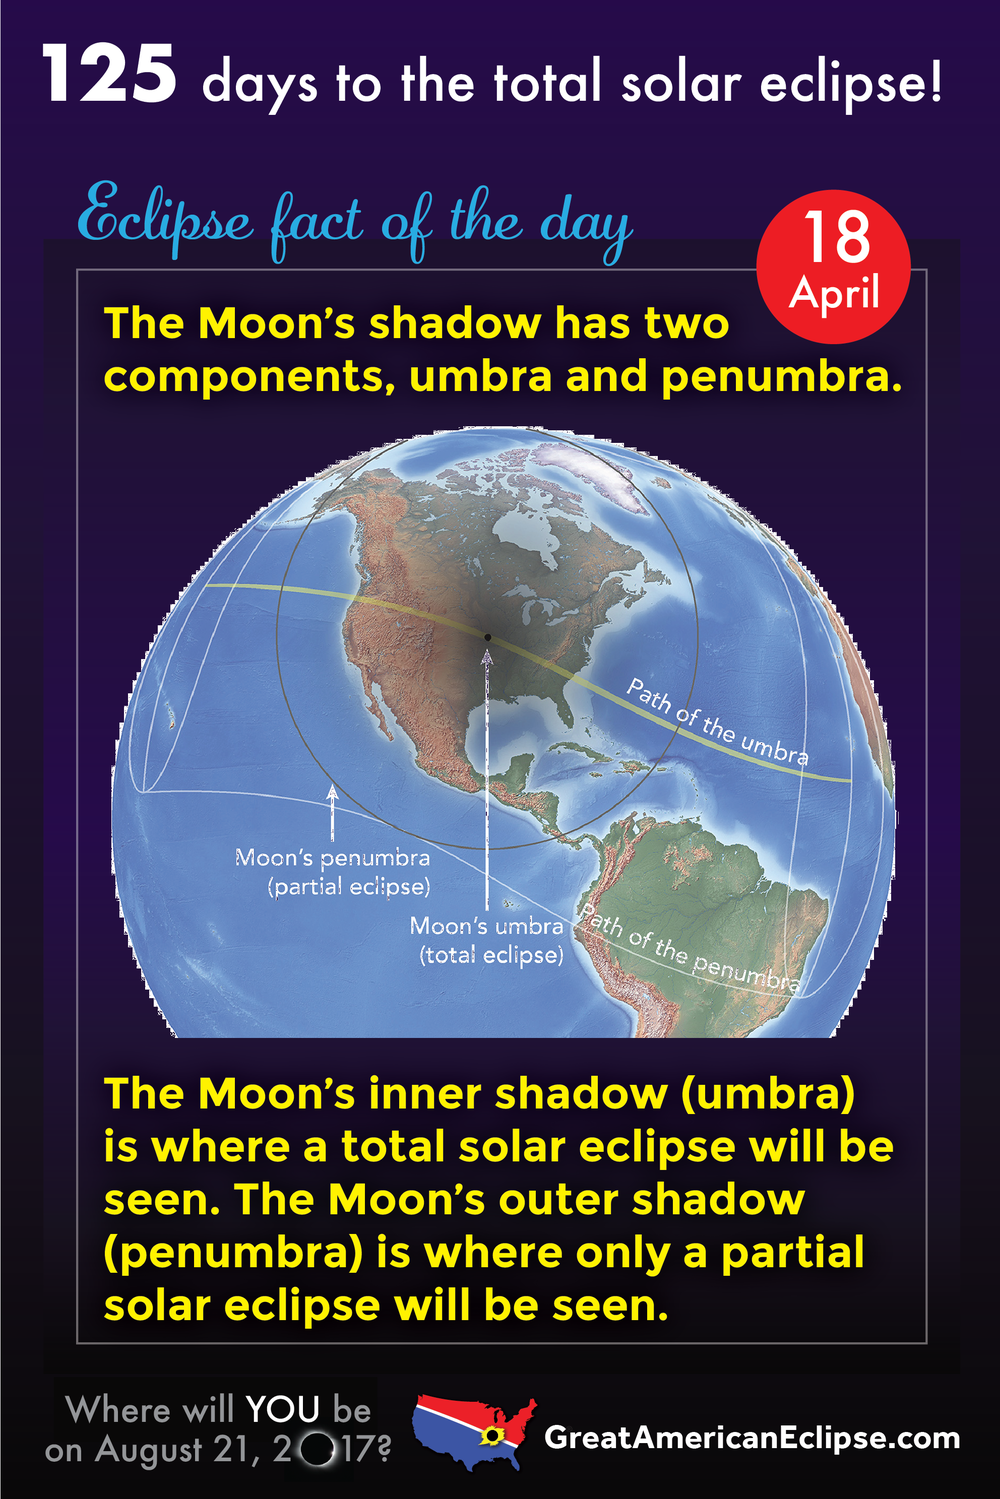 Visit greatamericaneclipse.com/fact-of-the-day/ for more facts of the day